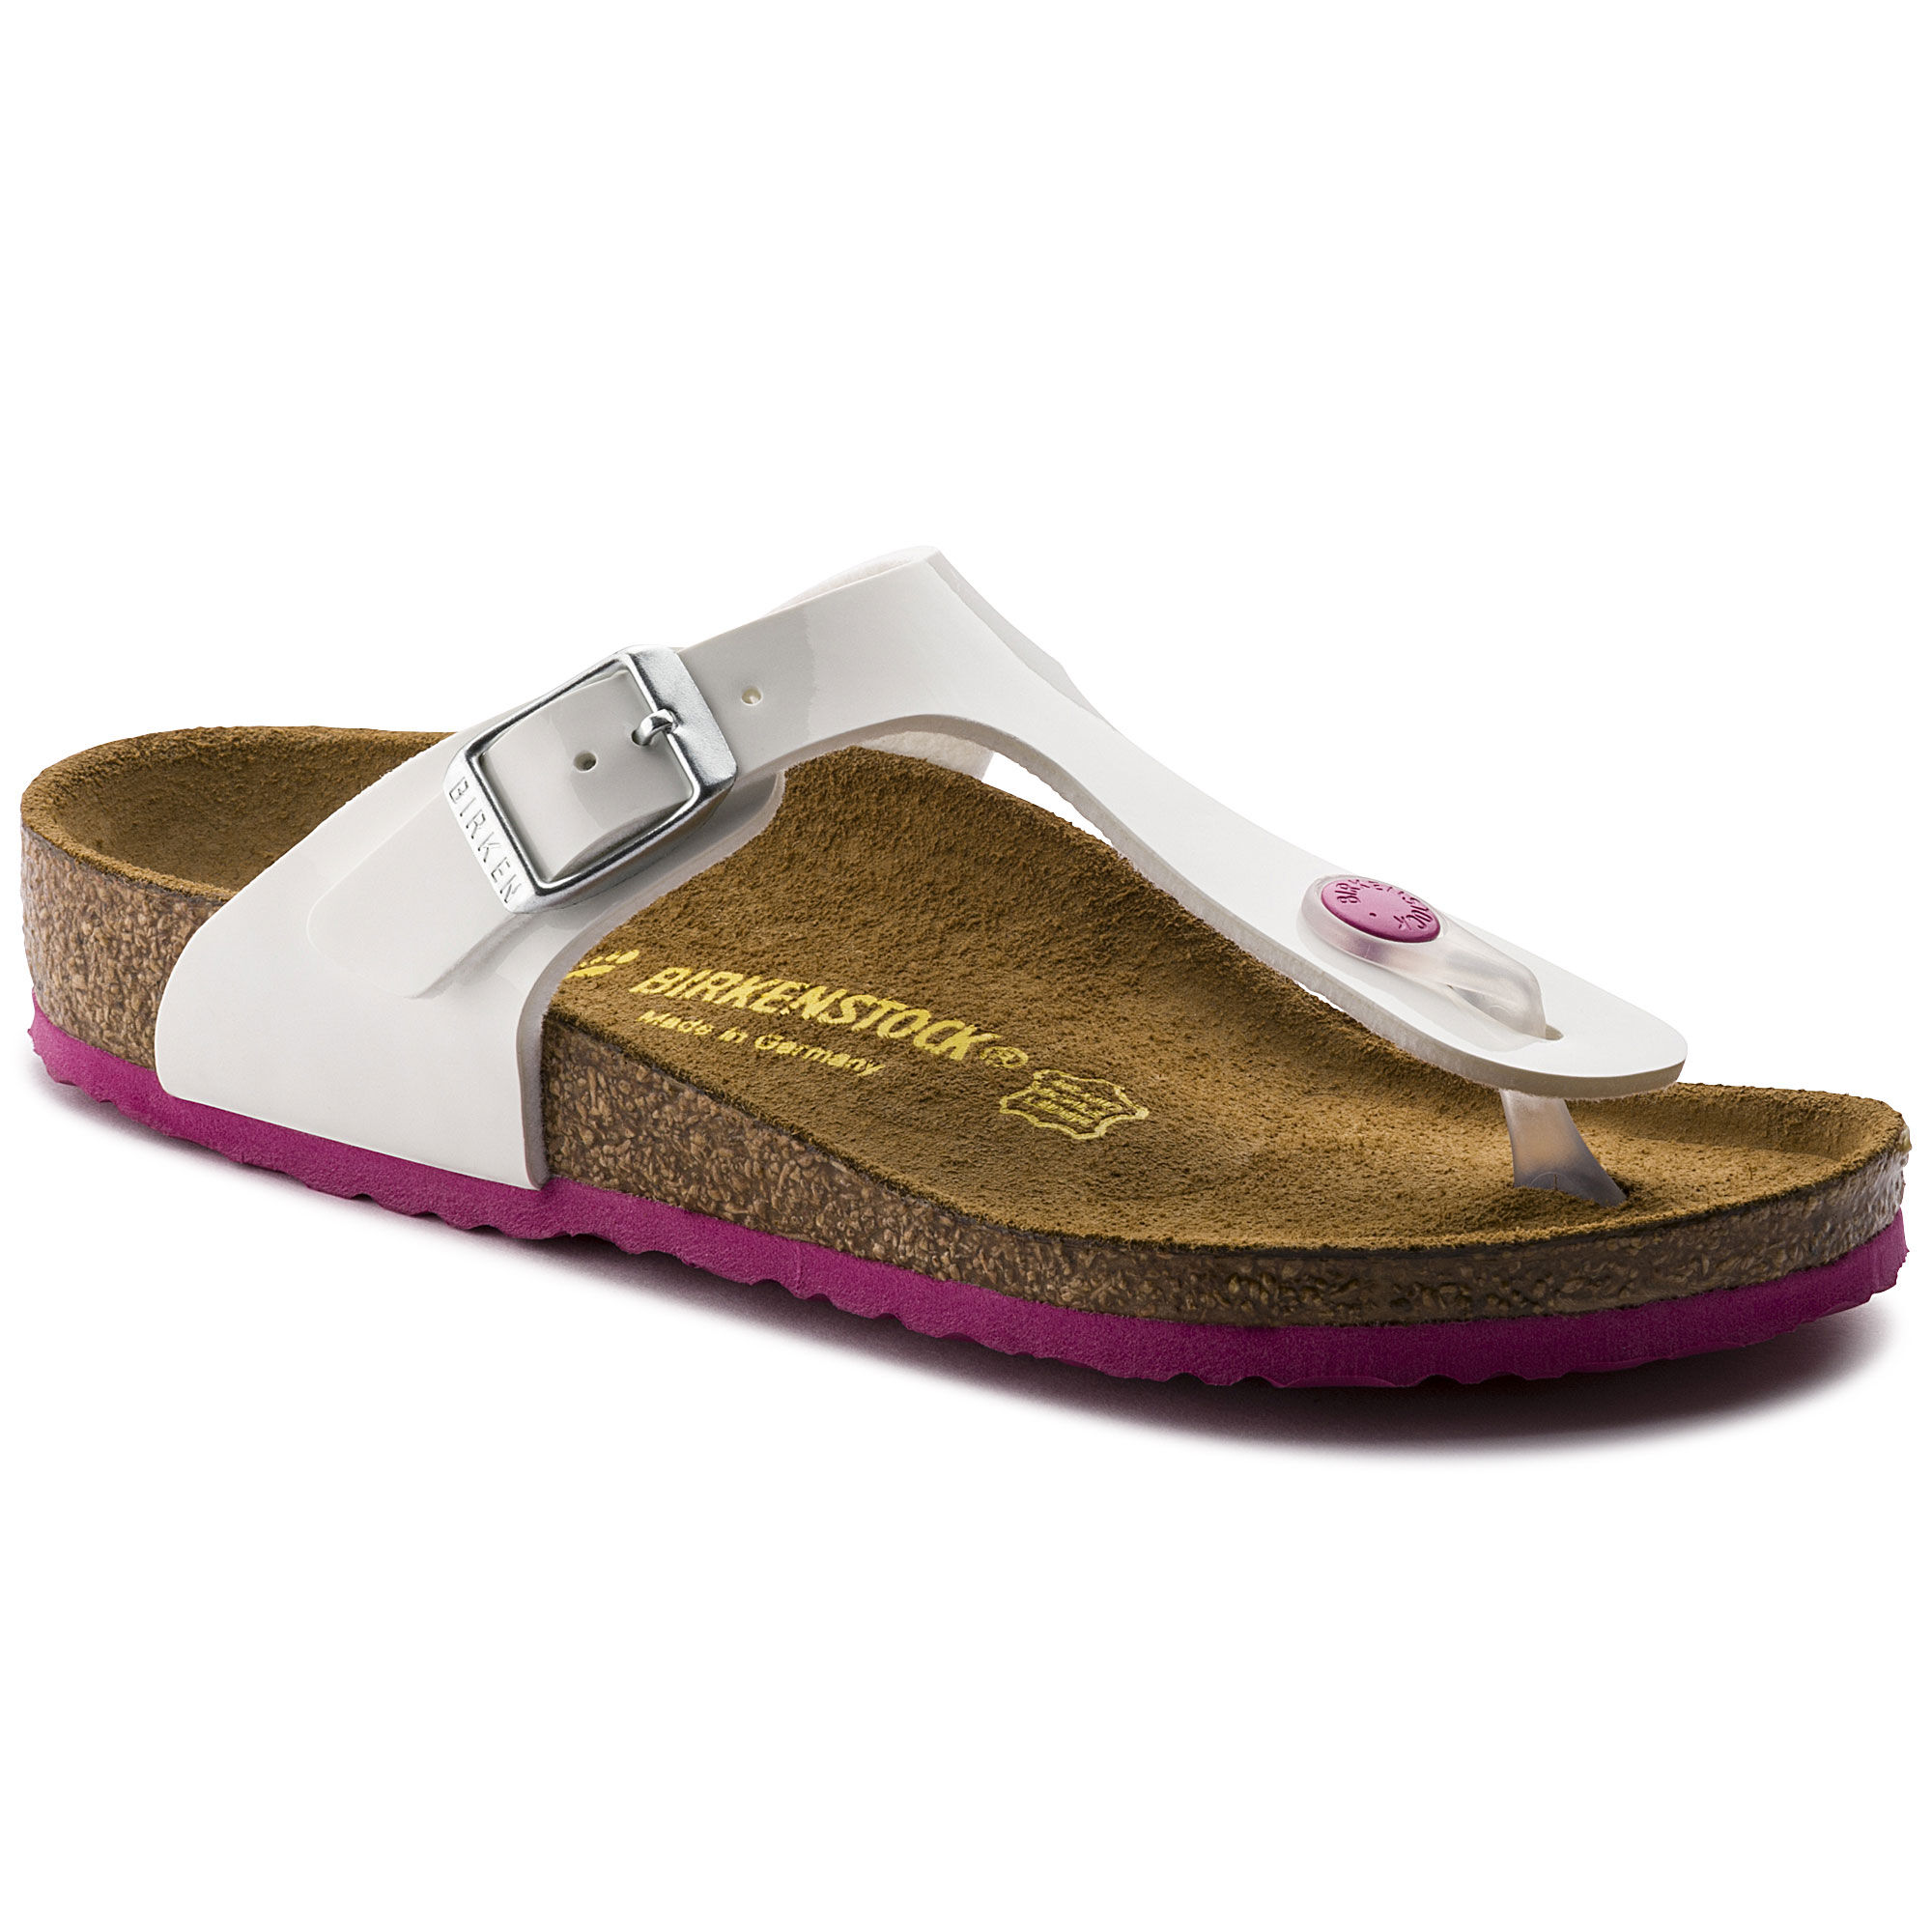 Newest Birkenstock Gizeh Flor W Purple Womens Flip Flops Outlet UK1080